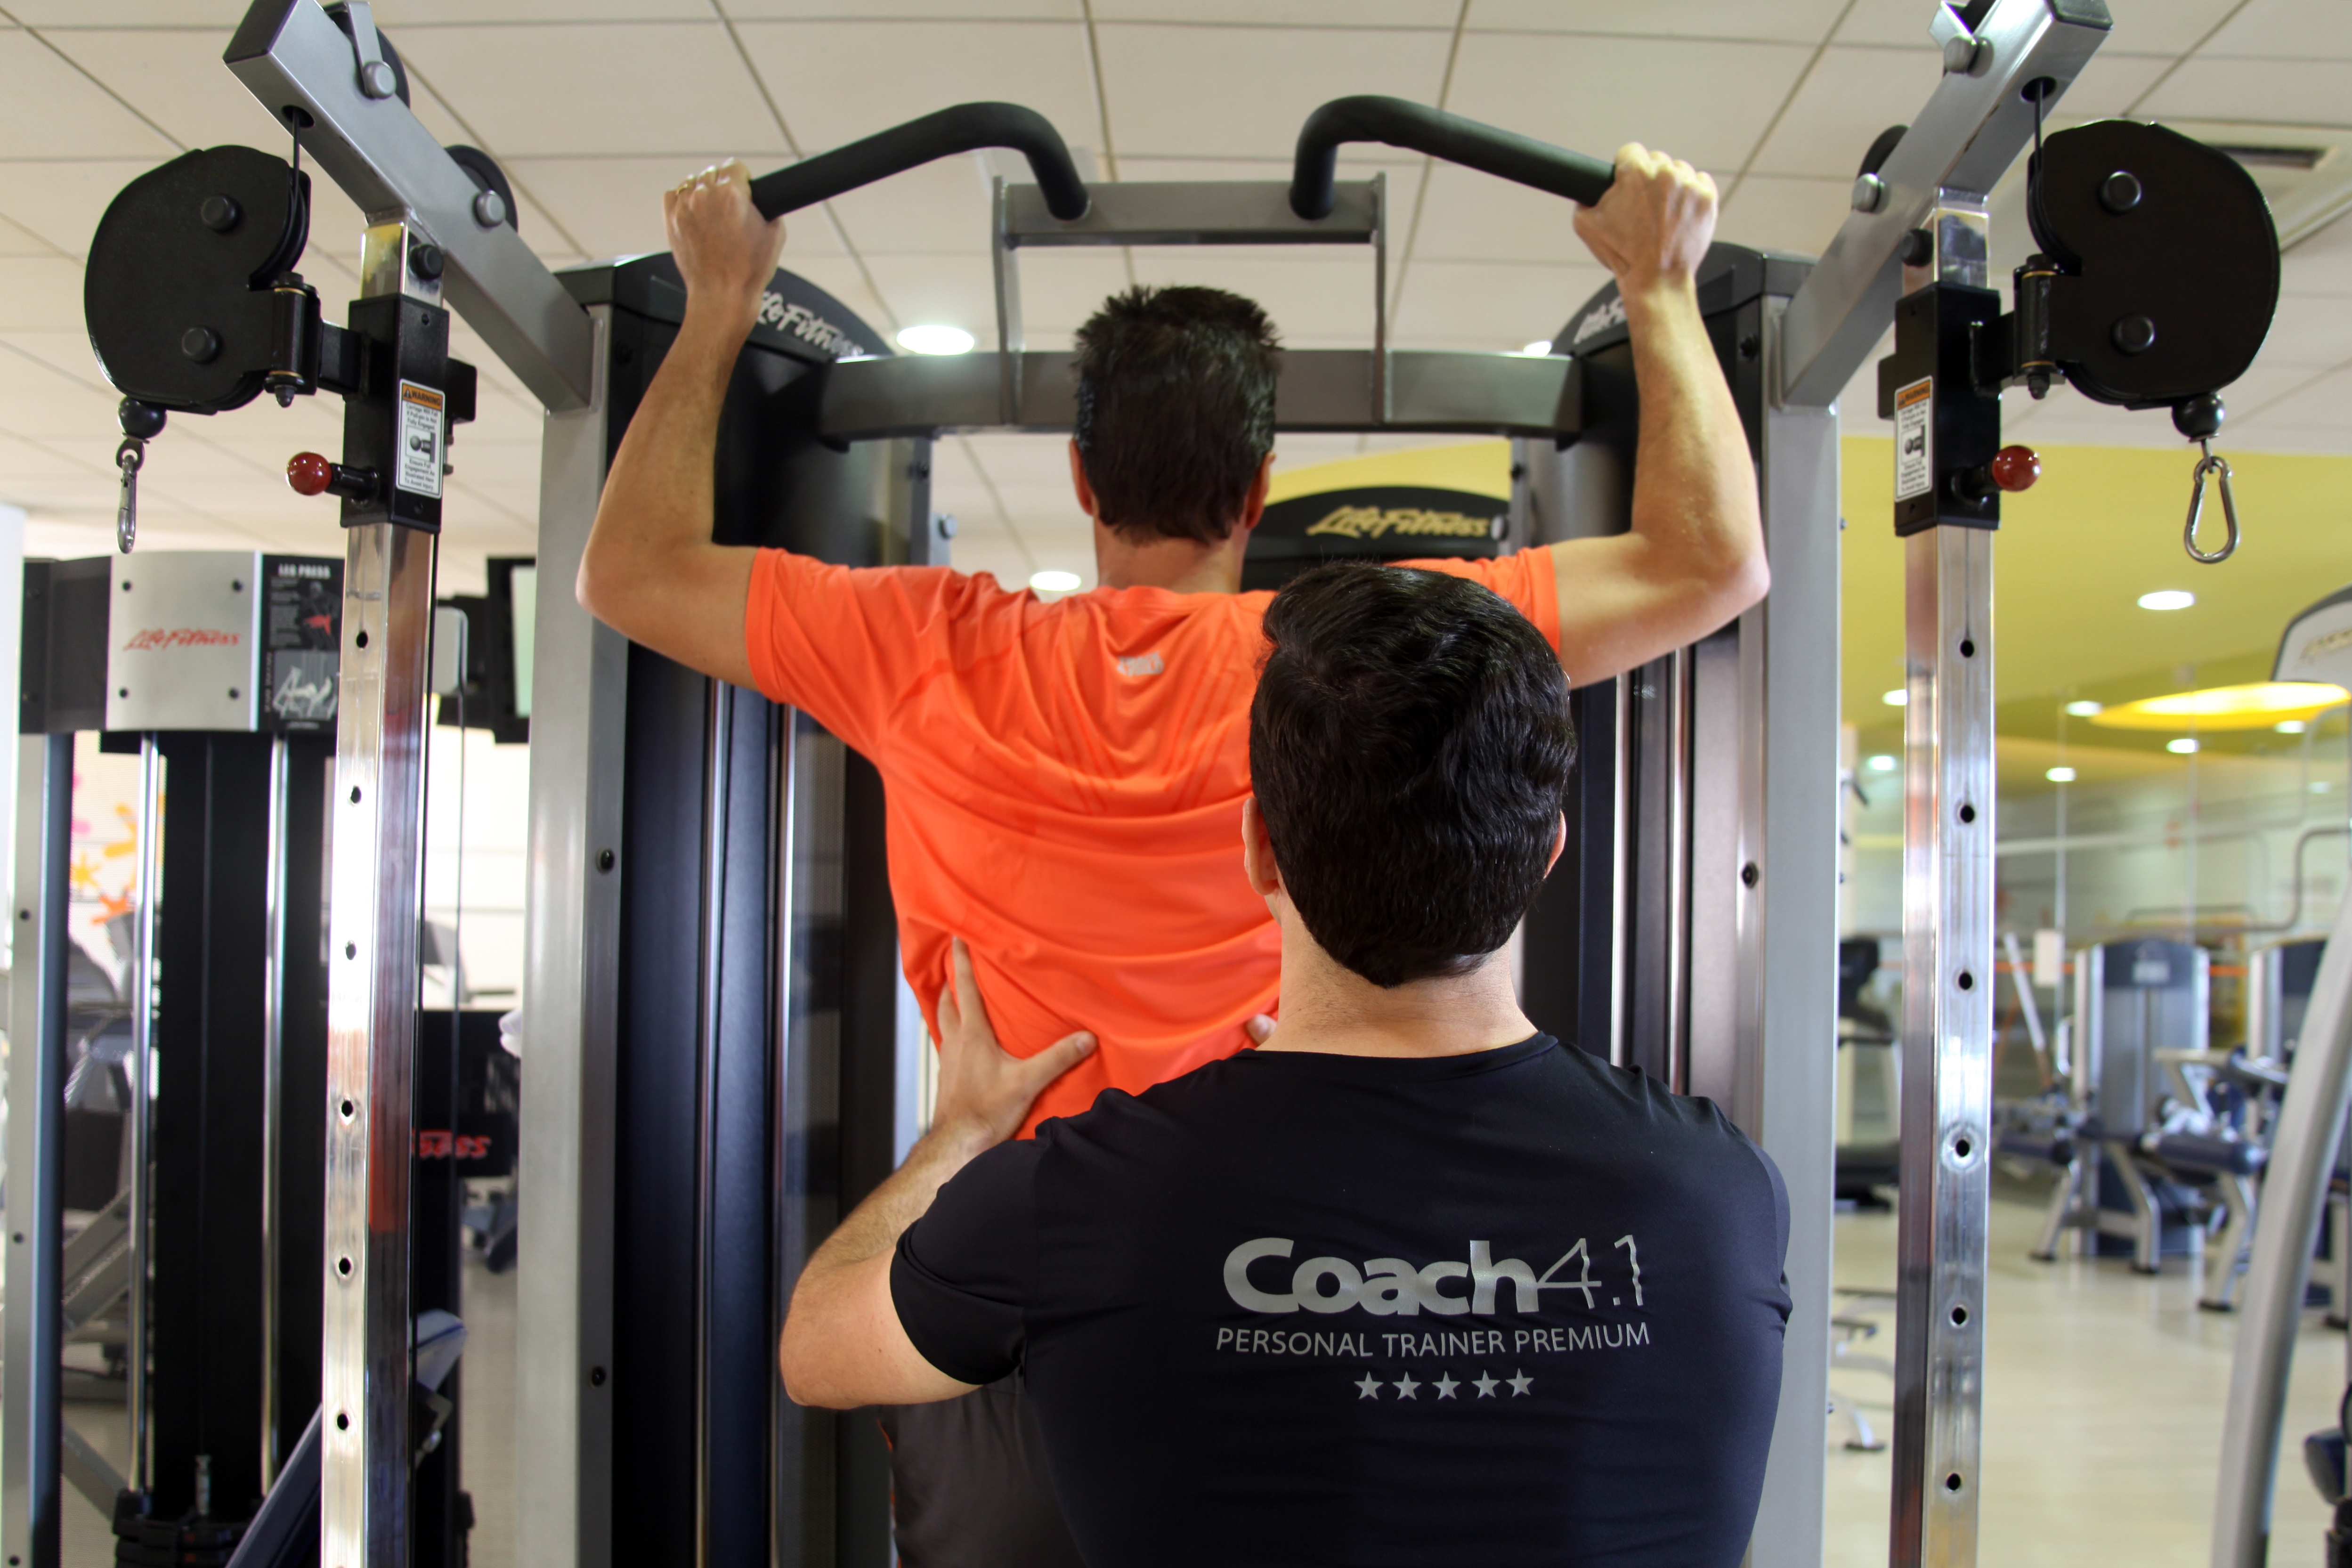 Personal Coach 4.1